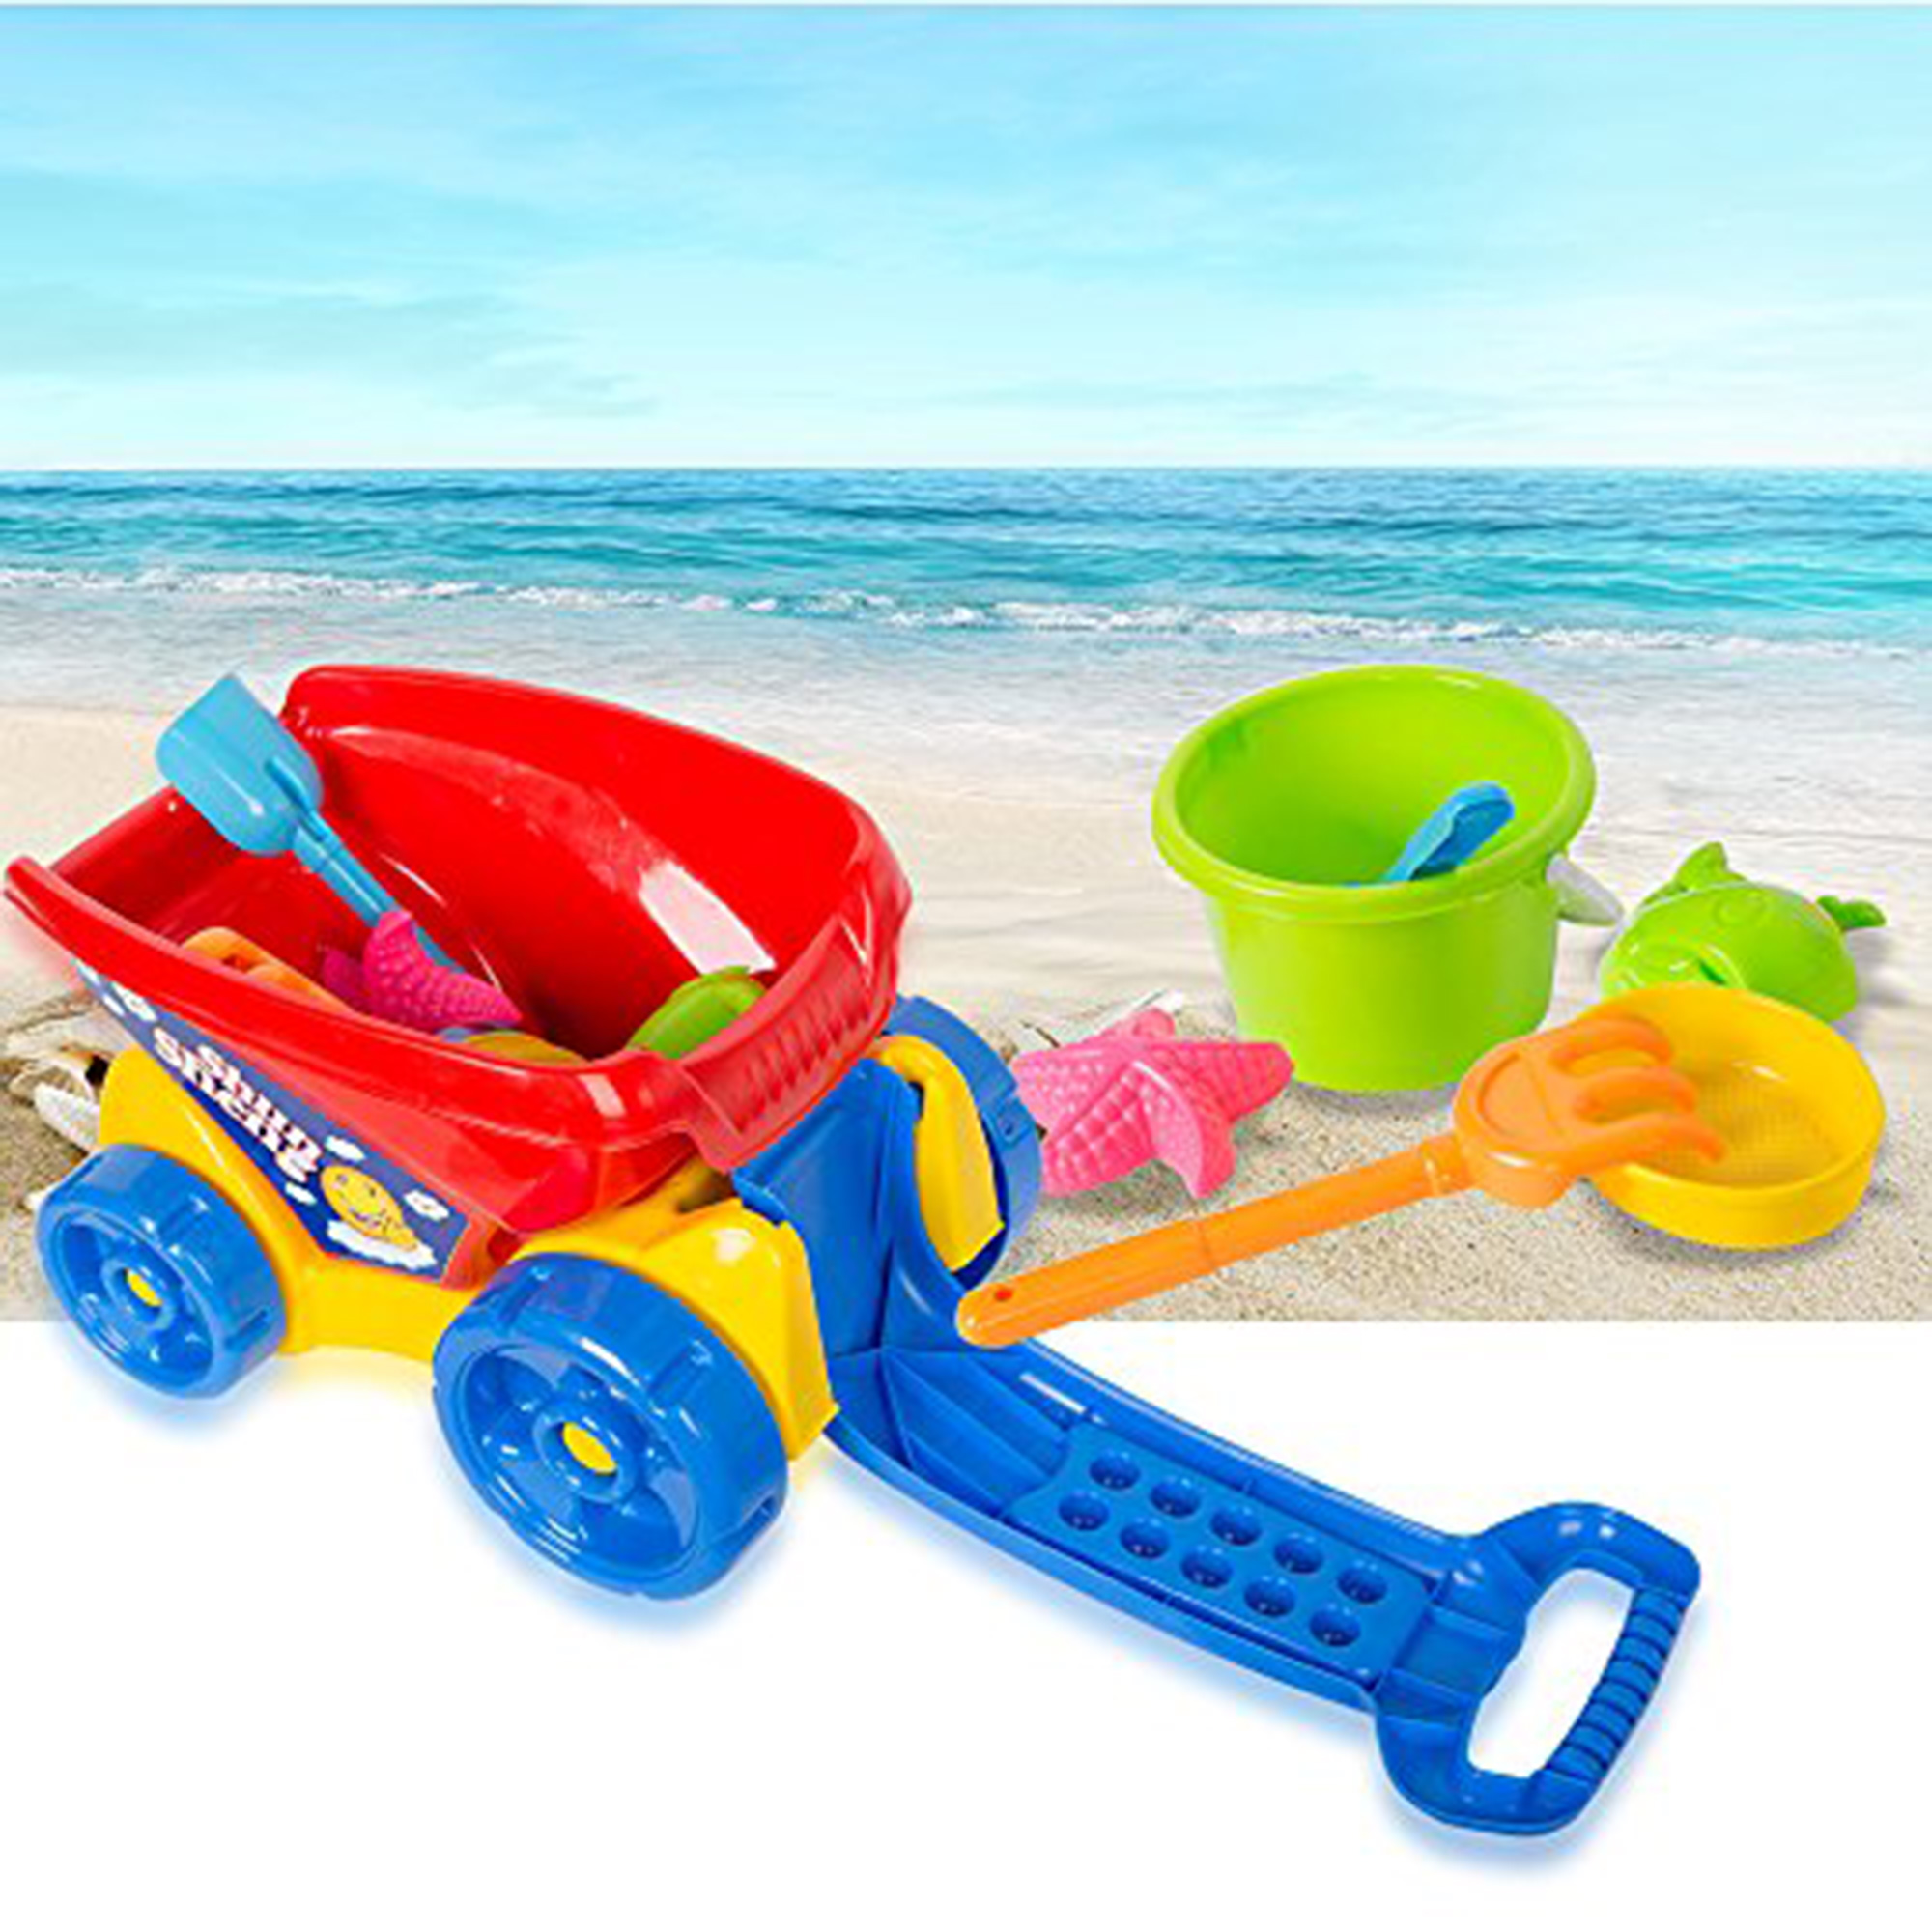 KARMAS PRODUCT Plastic Beach Toys Dump Truck Sand Bucket and Shovel Playset by KARMAS PRODUCT